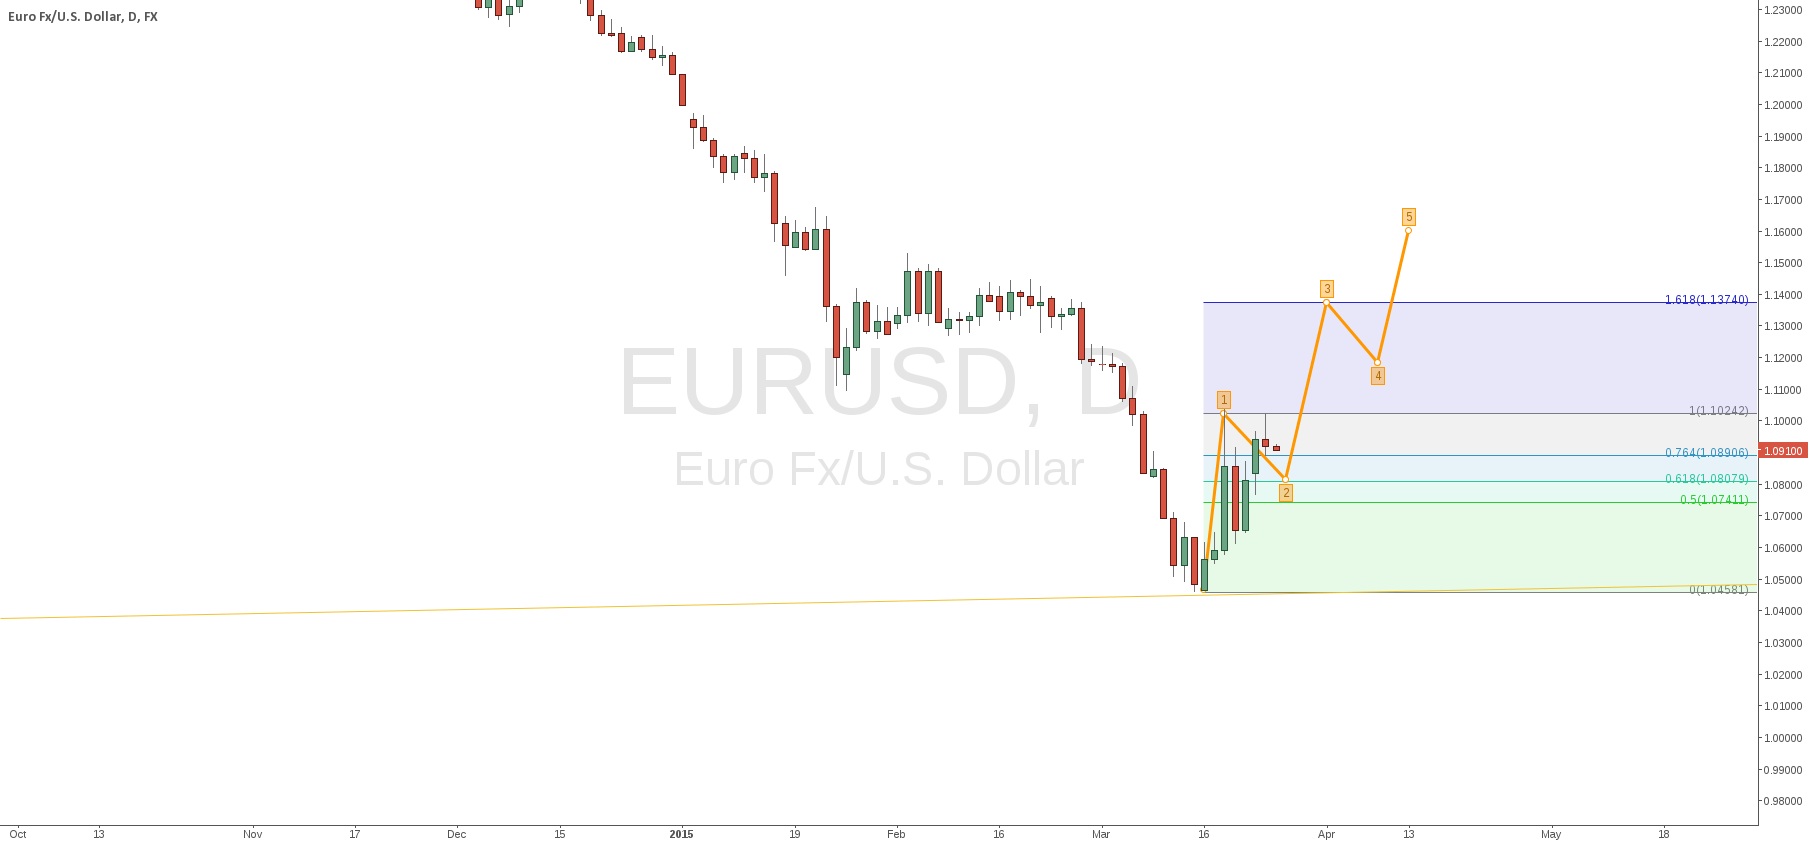 EURUSD short, then long